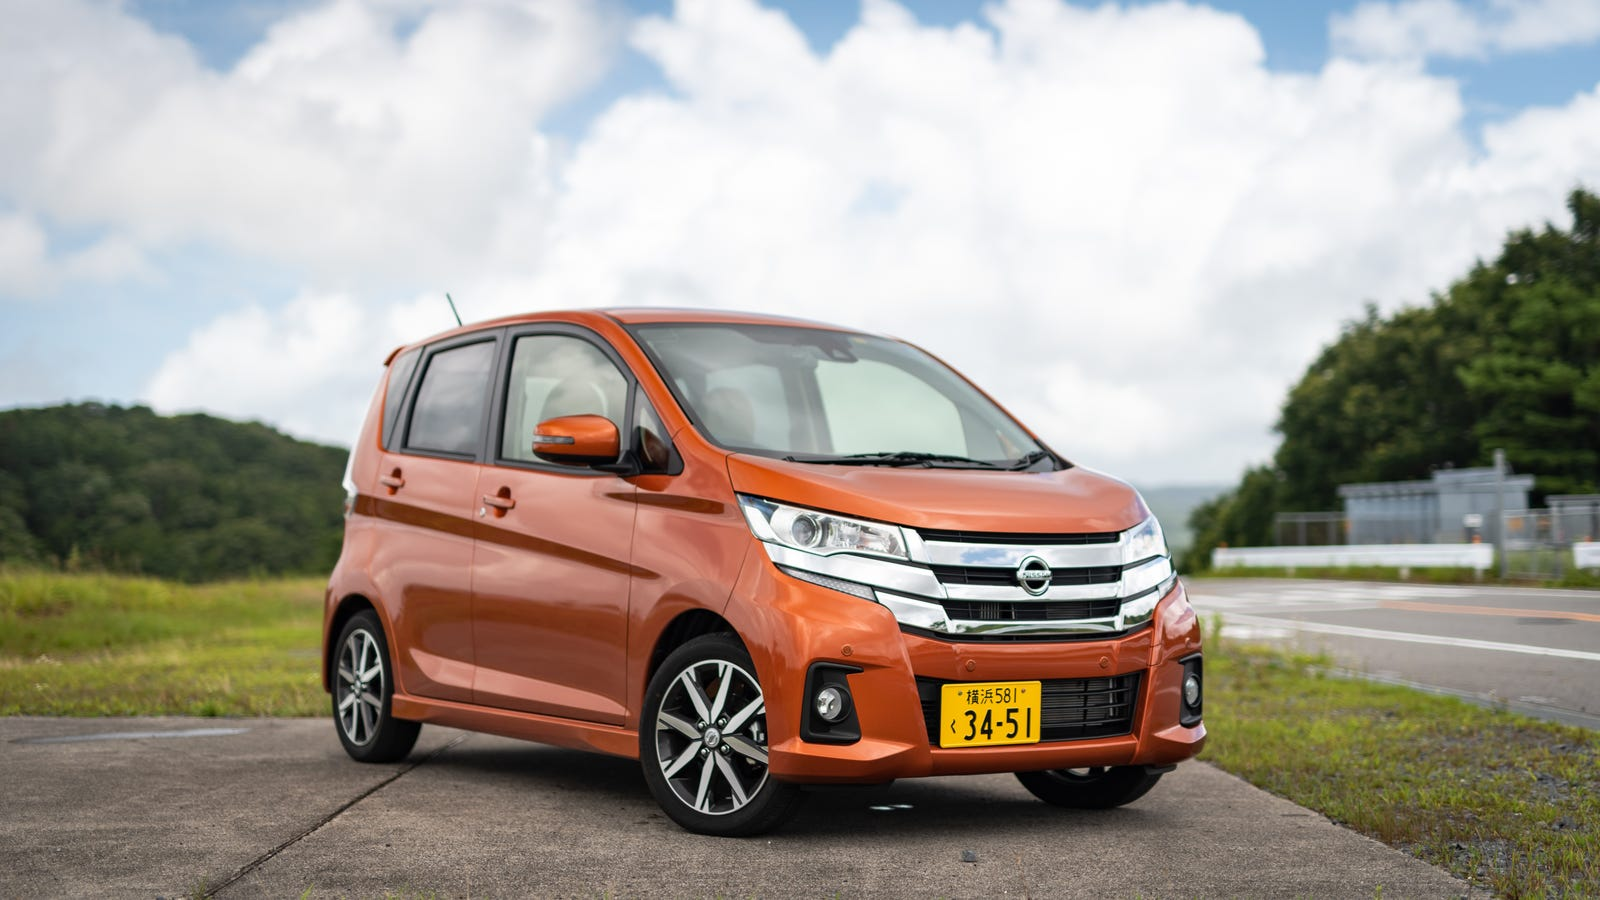 I Lived With a Japanese Kei Car for a Week and This Is ...